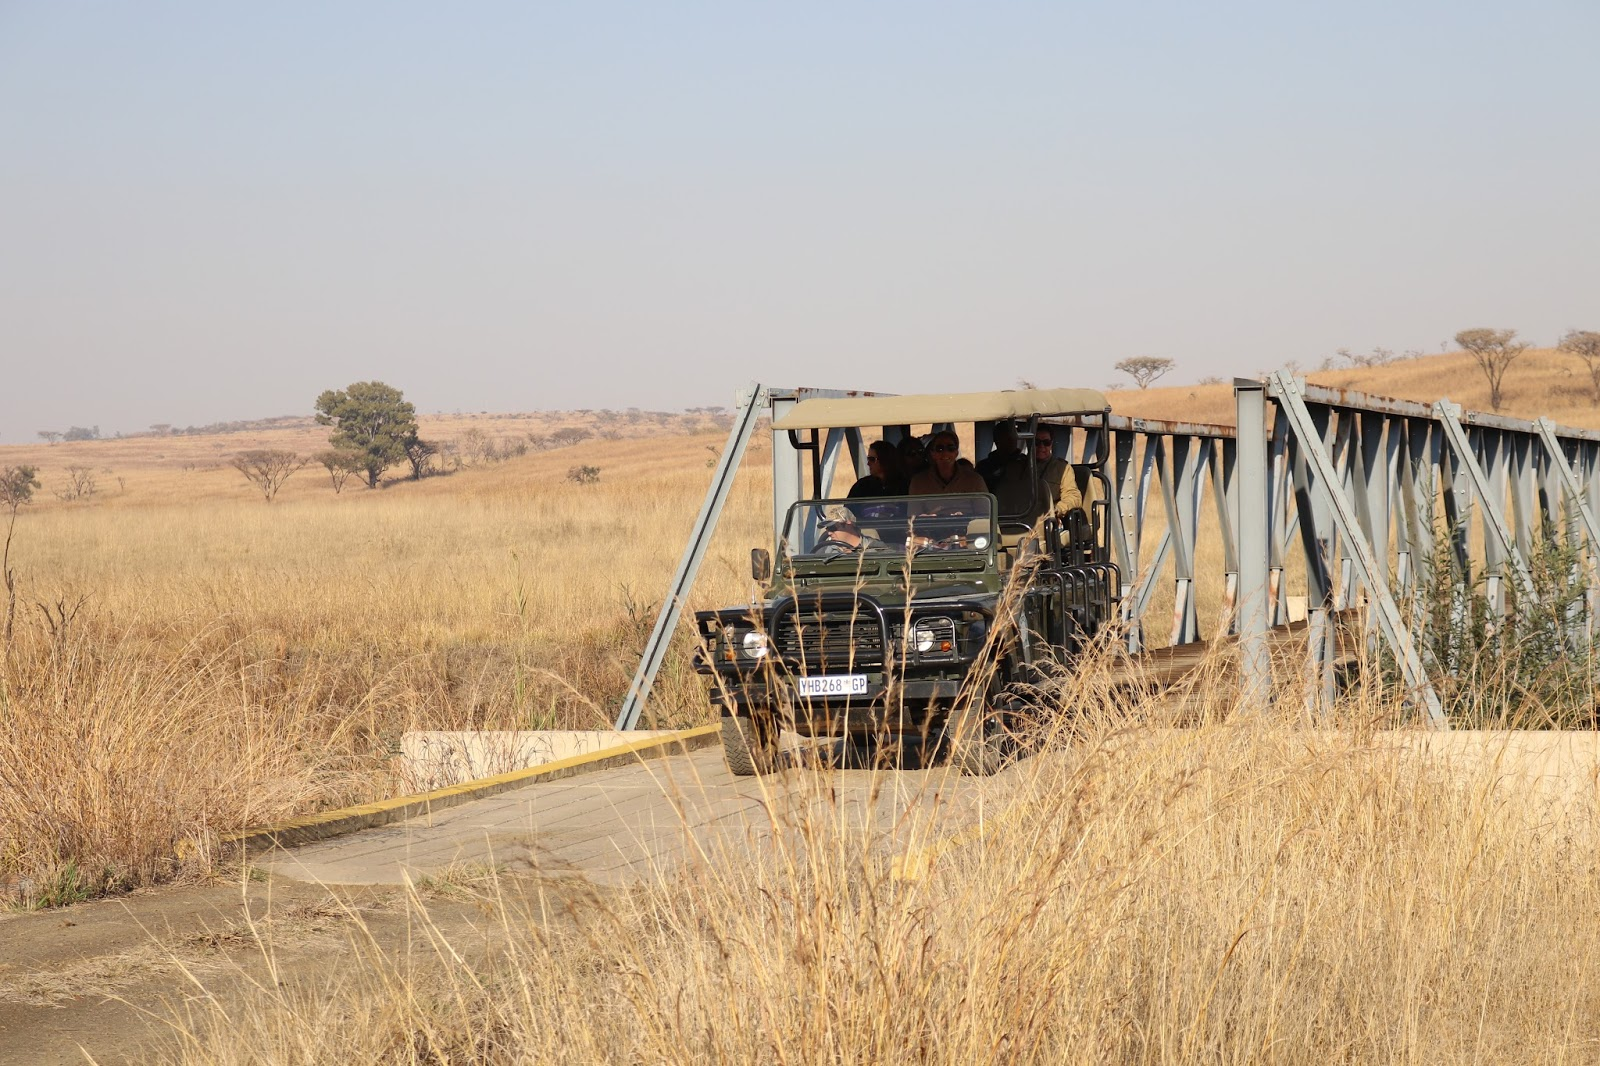 Jeep in the Nambiti Game Reserve, South Africa